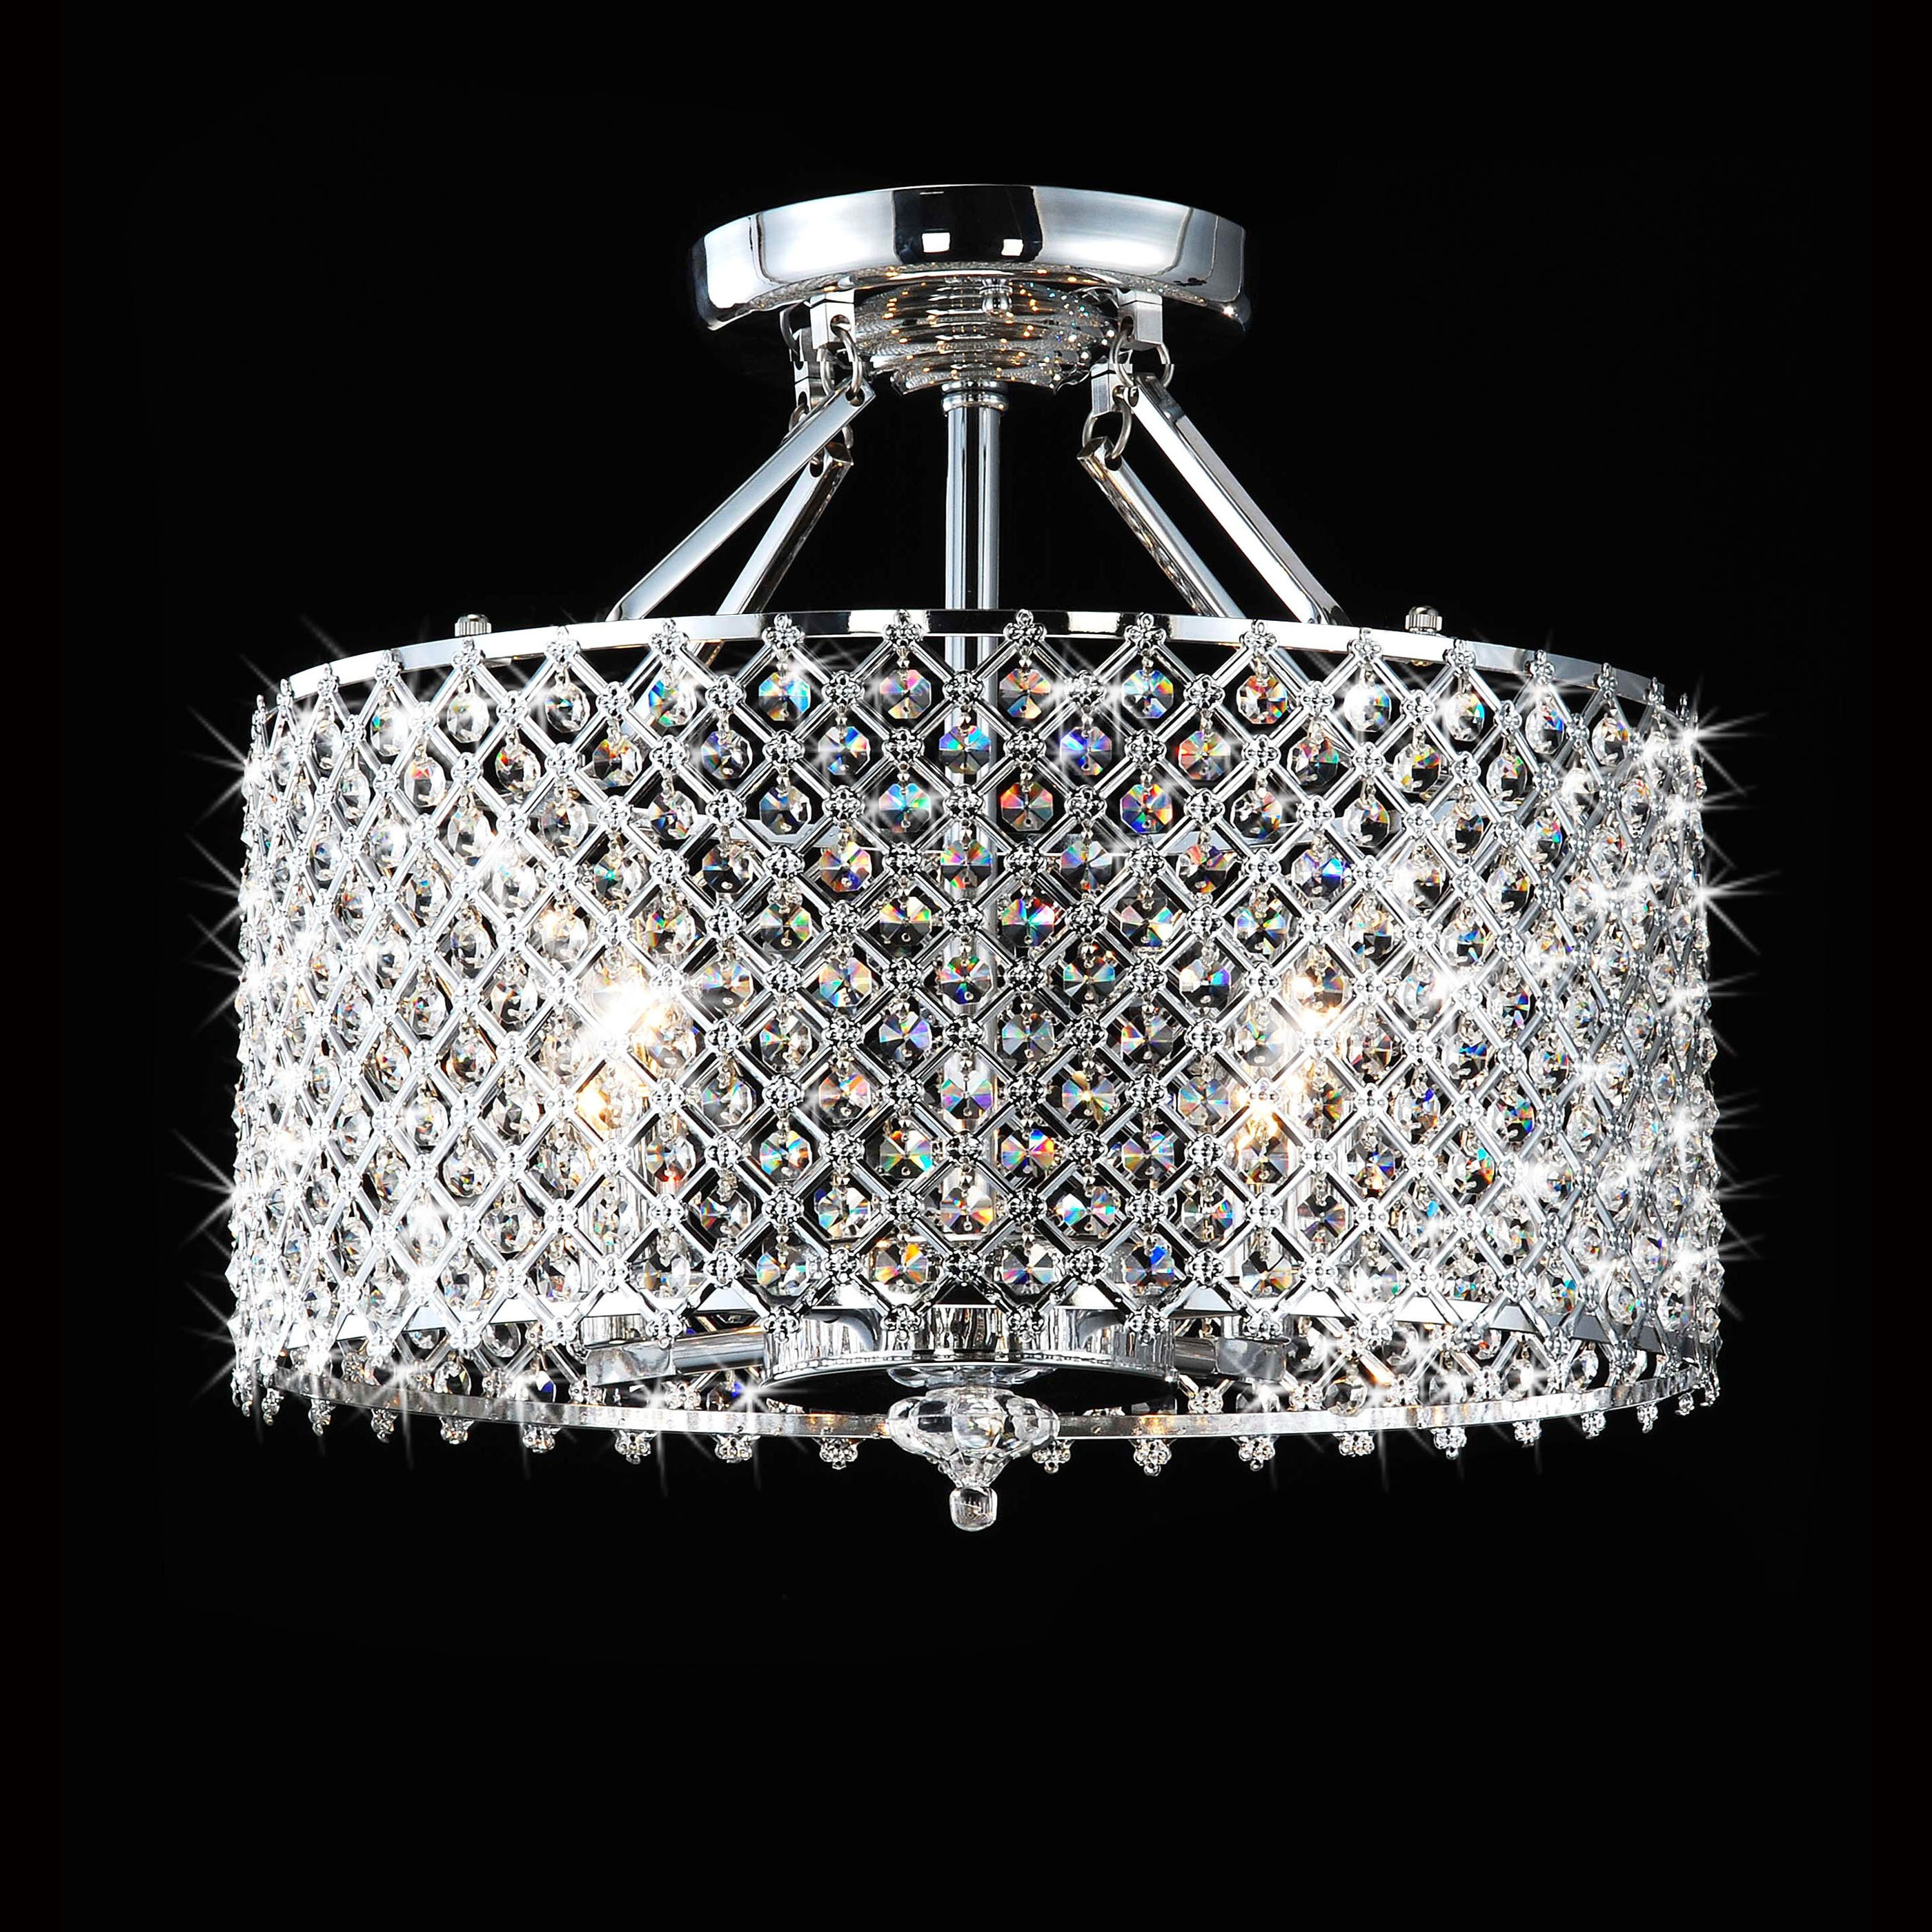 Chrome Crystal 4 Light Round Ceiling Chandelier The Lighting Pertaining To Small Chandeliers For Low Ceilings (Image 4 of 15)